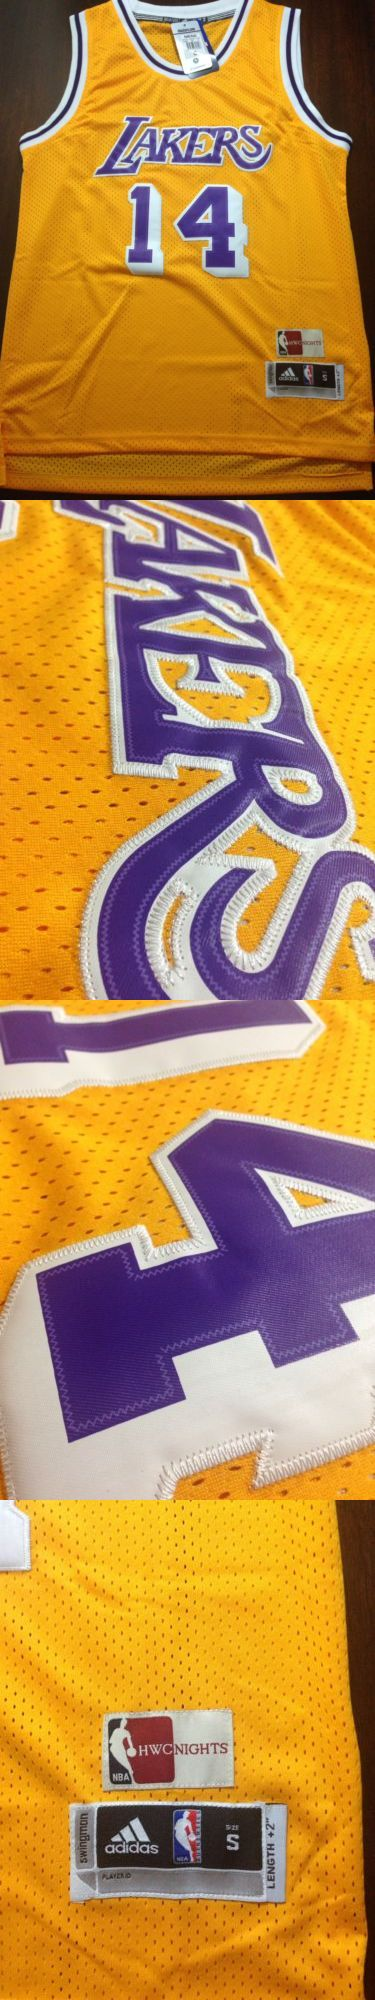 Basketball-NBA 24442: New Brandon Ingram Los Angeles Lakers Small S Throwback Rare Stitched La -> BUY IT NOW ONLY: $59.99 on eBay!